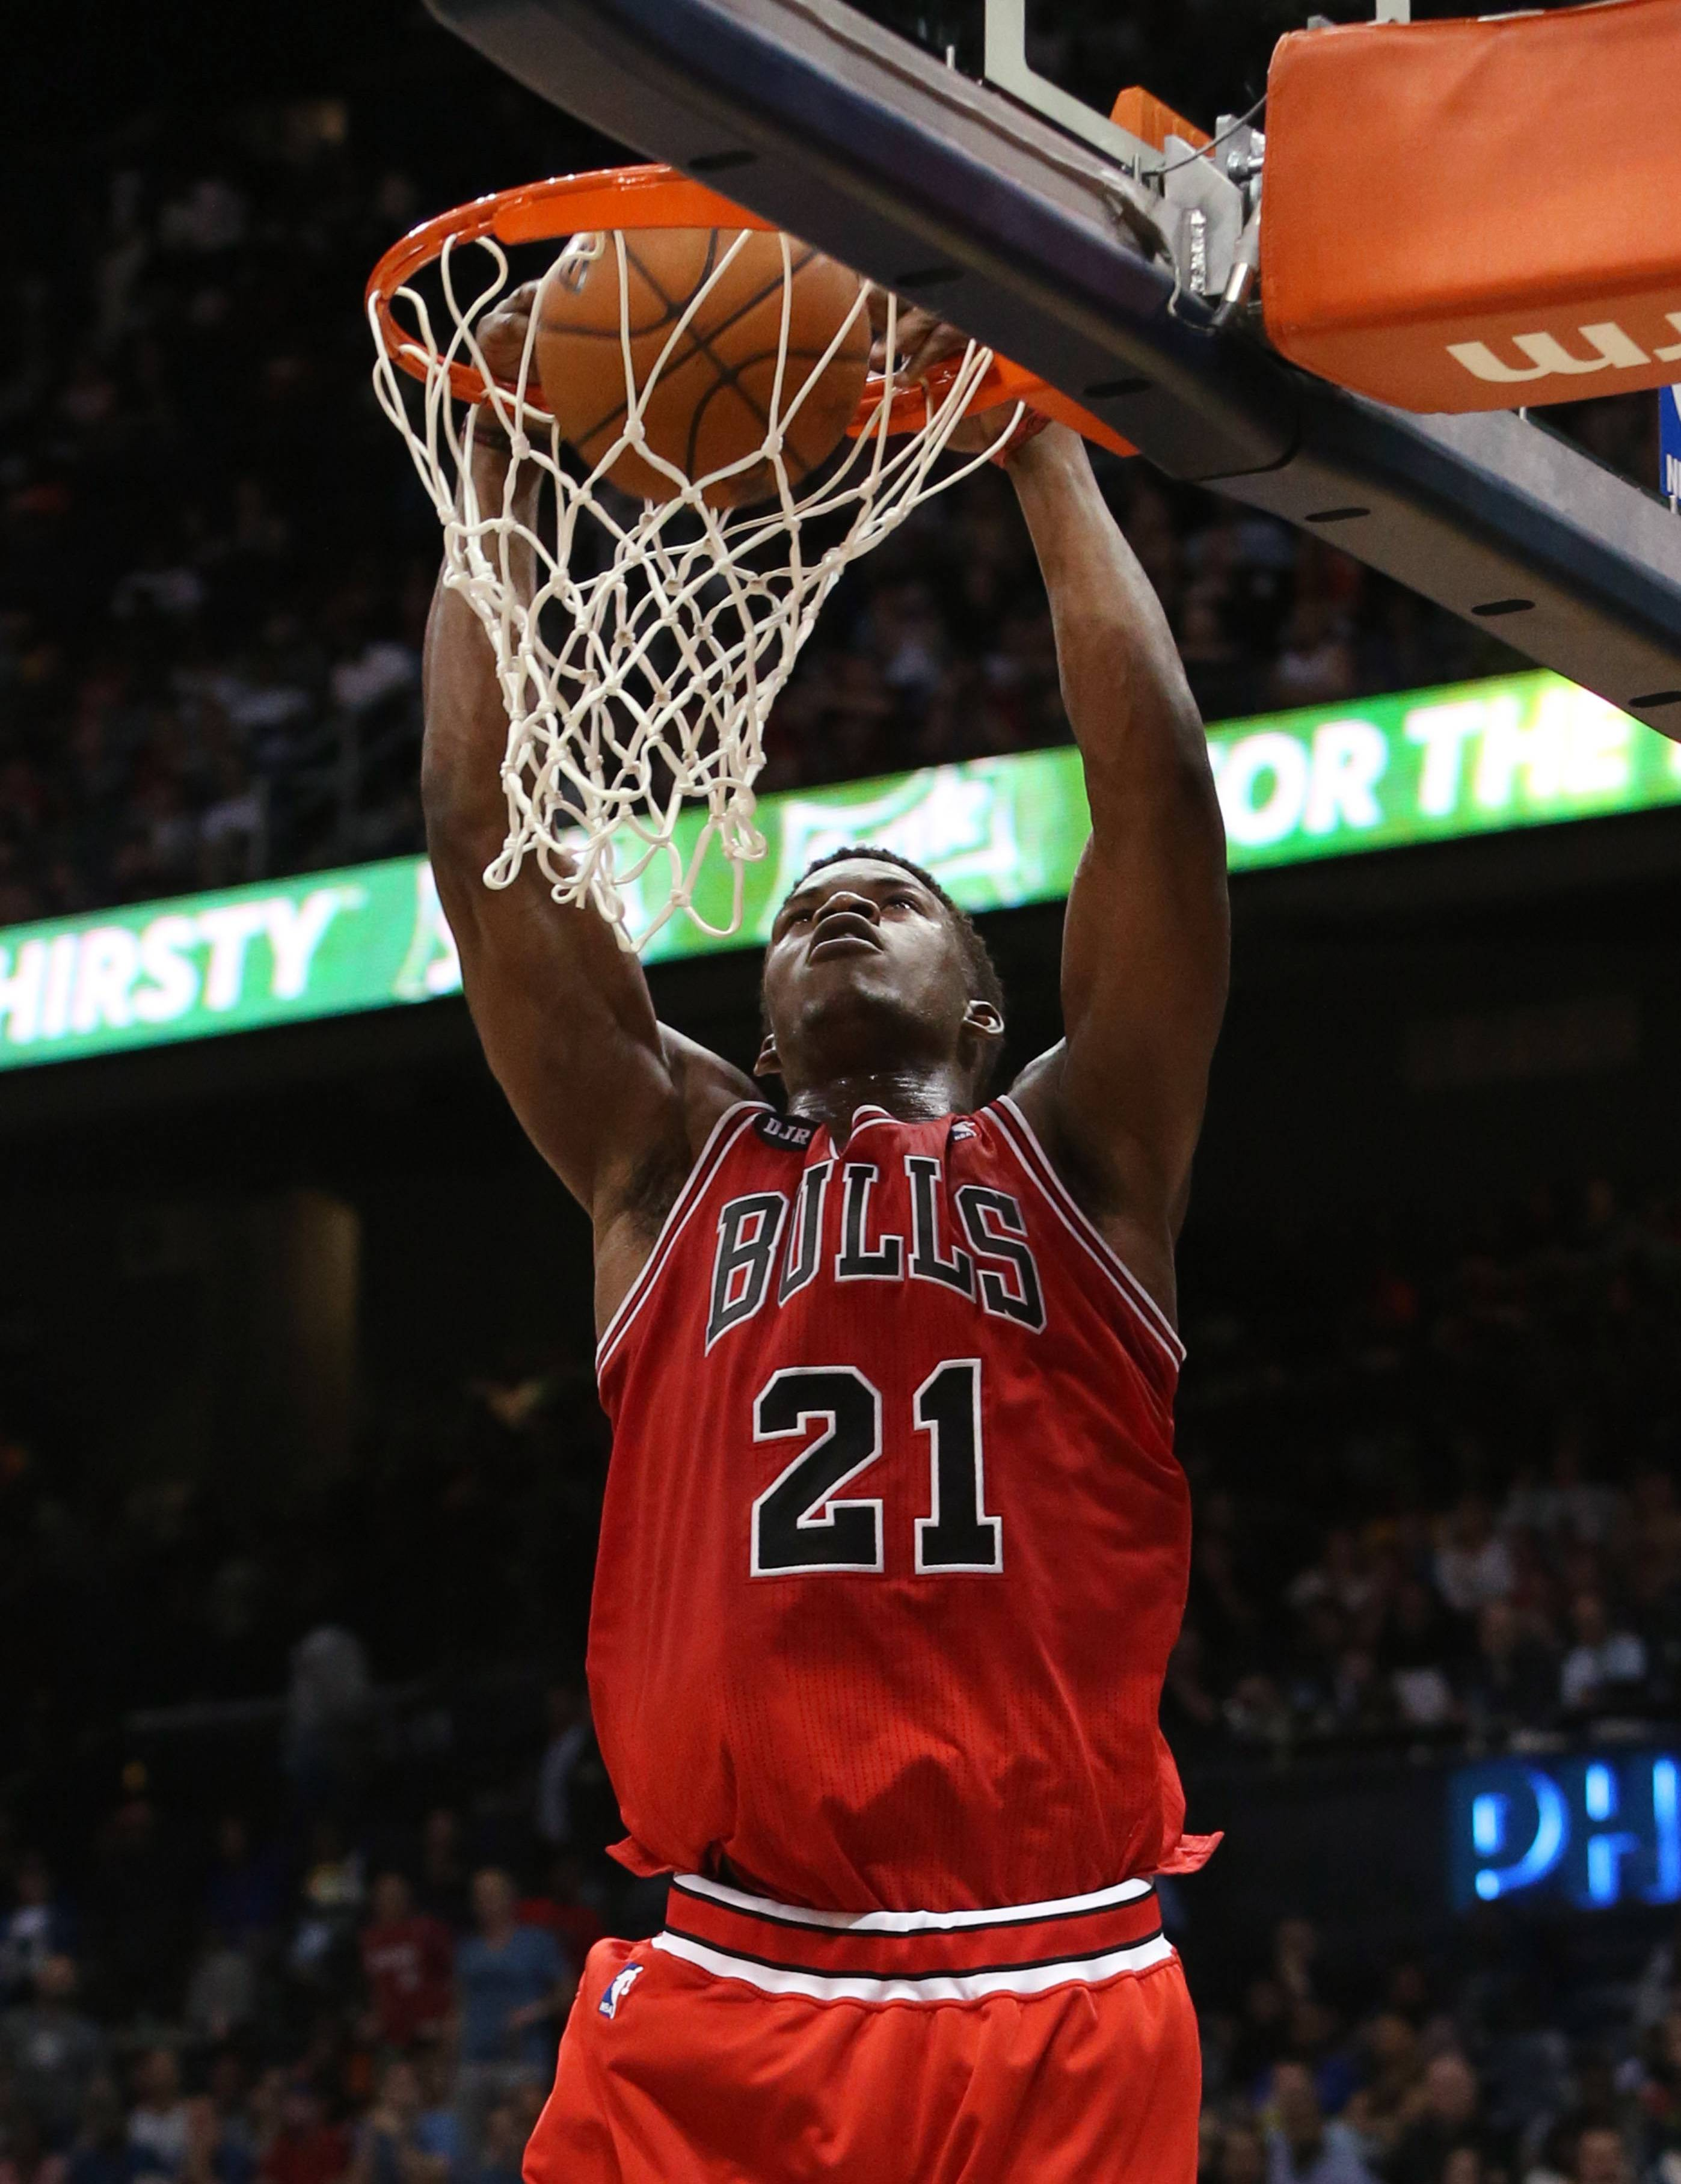 Bulls guard Jimmy Butler (21) goes up for a dunk in the second half of an NBA basketball game against the Atlanta Hawks on Wednesday in Atlanta. The Bulls won 105-92.